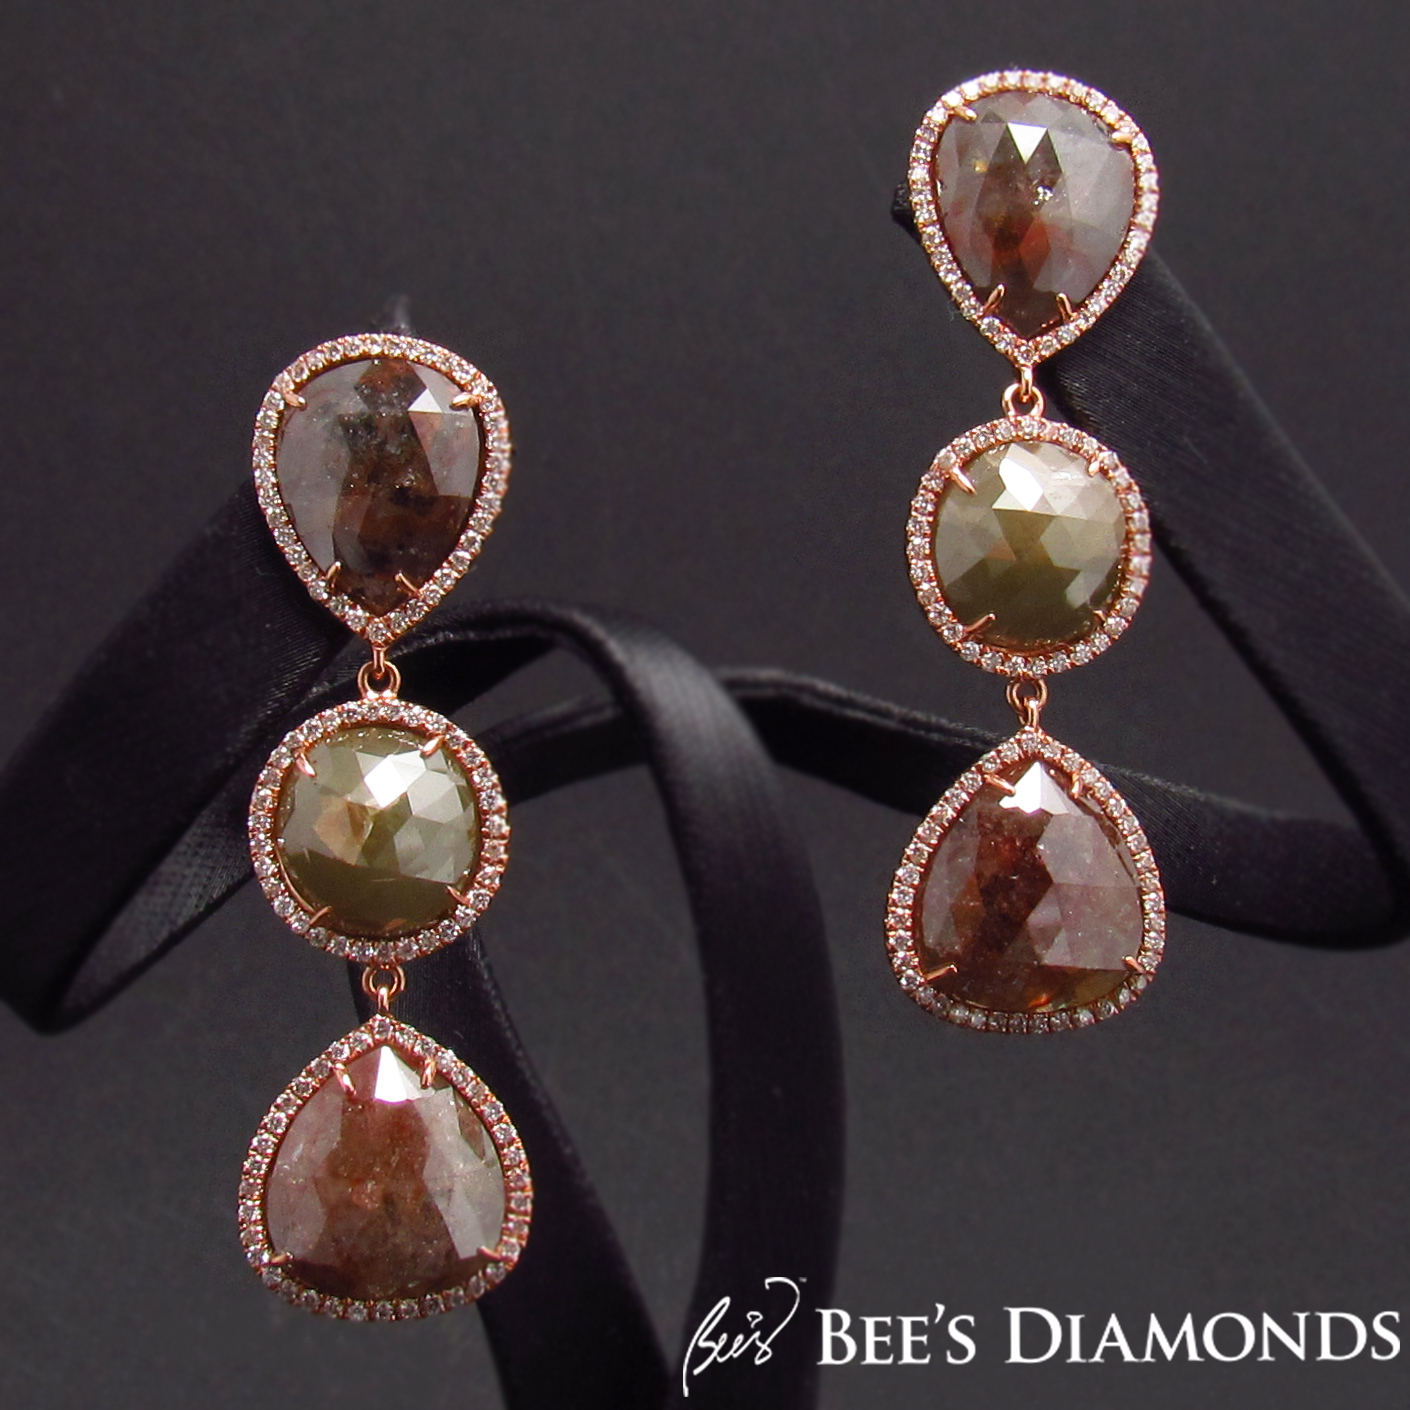 Autumn colours jewellery, diamond domes, Fall colours | Bee's Diamonds